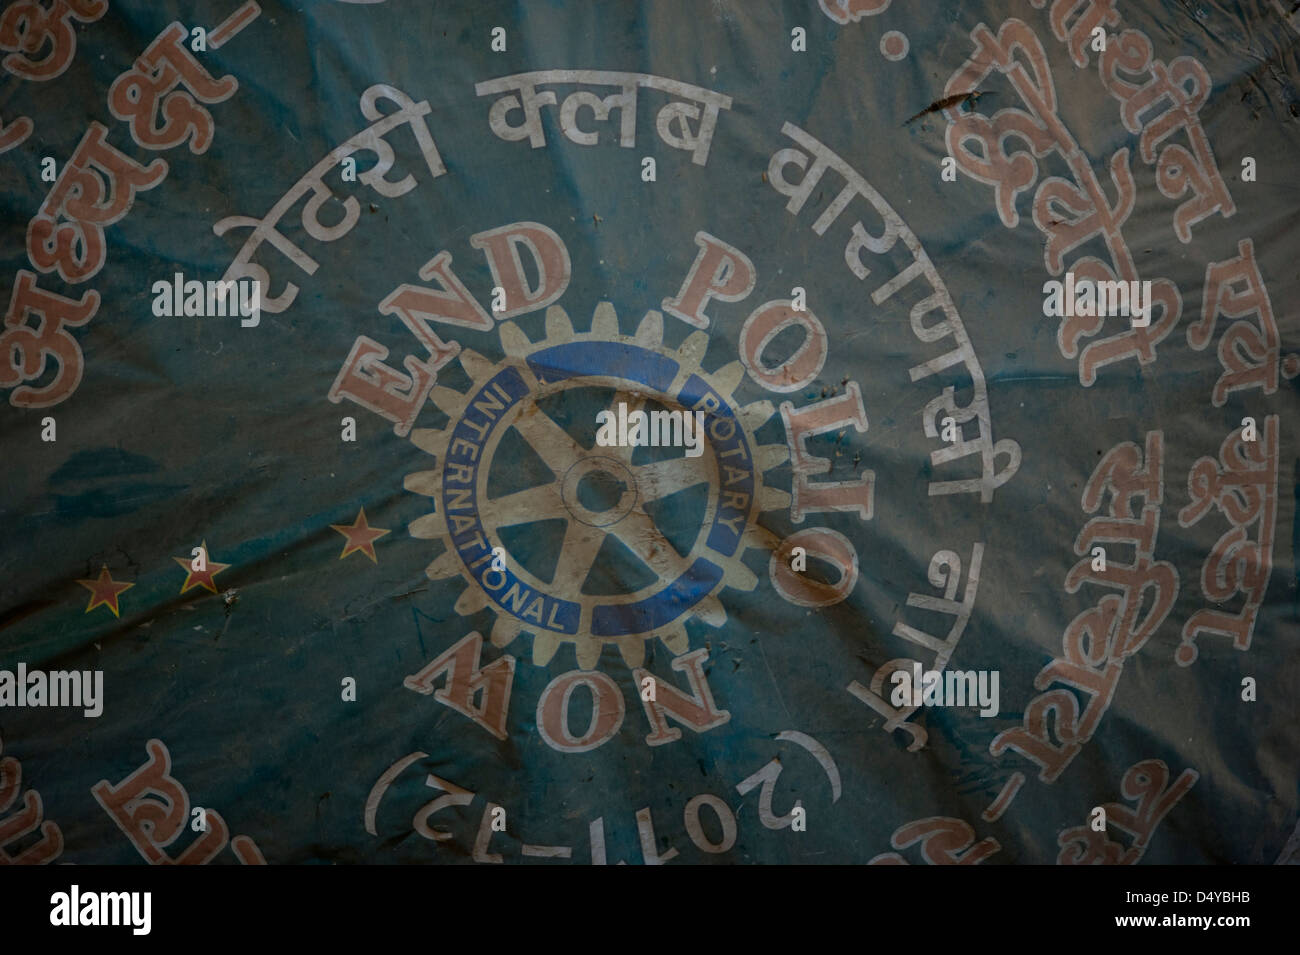 End Polio Now umbrella in Hindi and English at Varanasi India - Stock Image